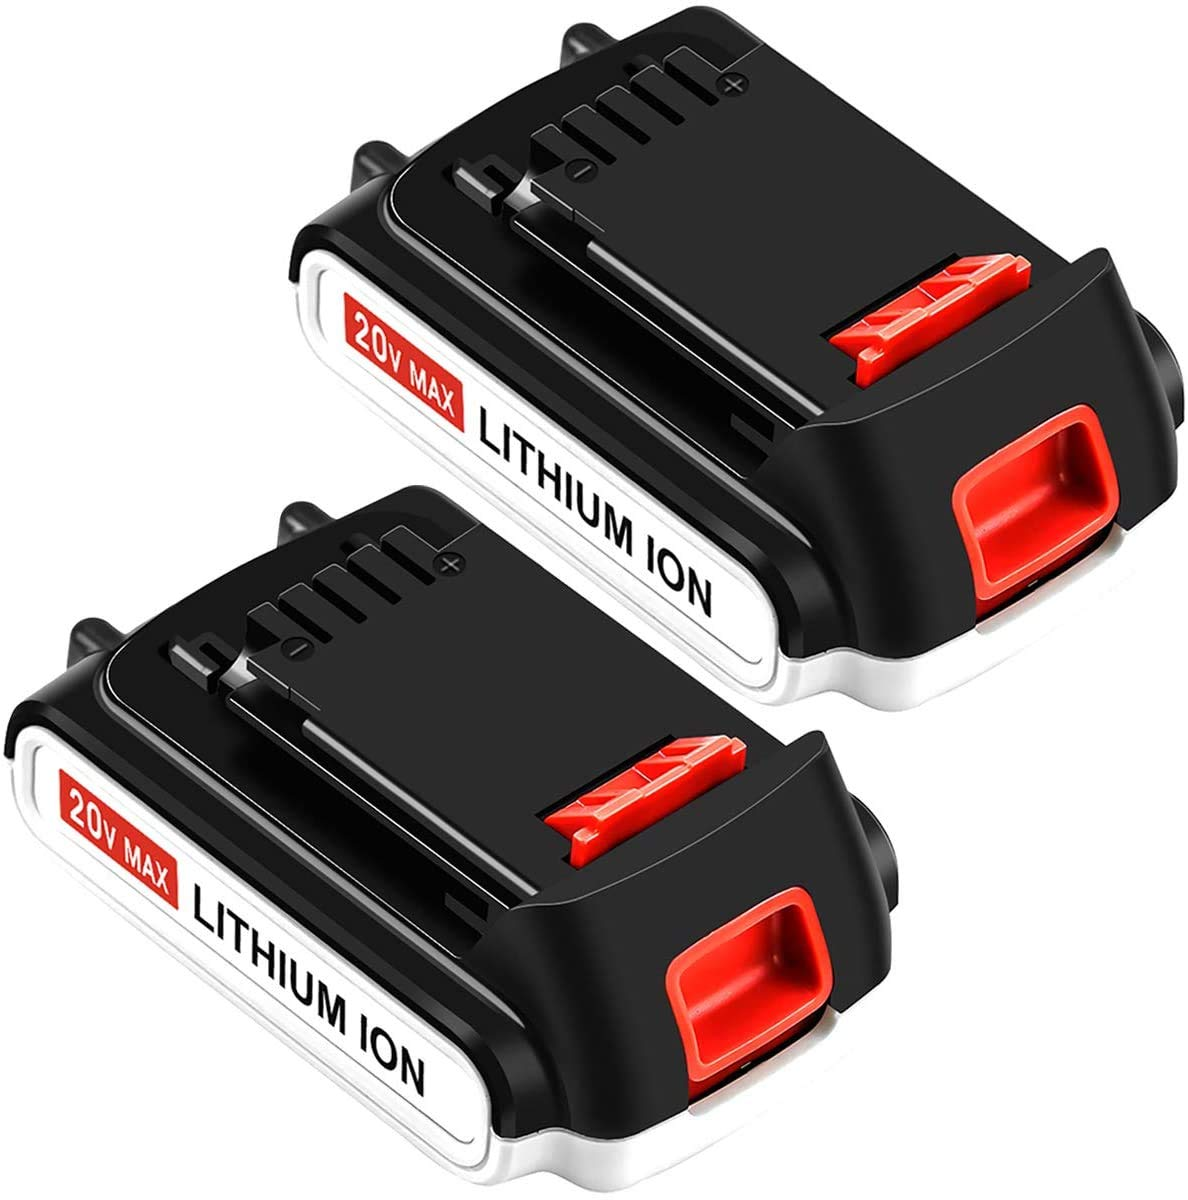 2 Pack LBXR20 Replacement for Black and Decker 20V Lithium Battery Max LB20 LBX20 LST220 LBXR2020-OPE LBXR20B-2 LB2X4020 Cordless Tool Batteries